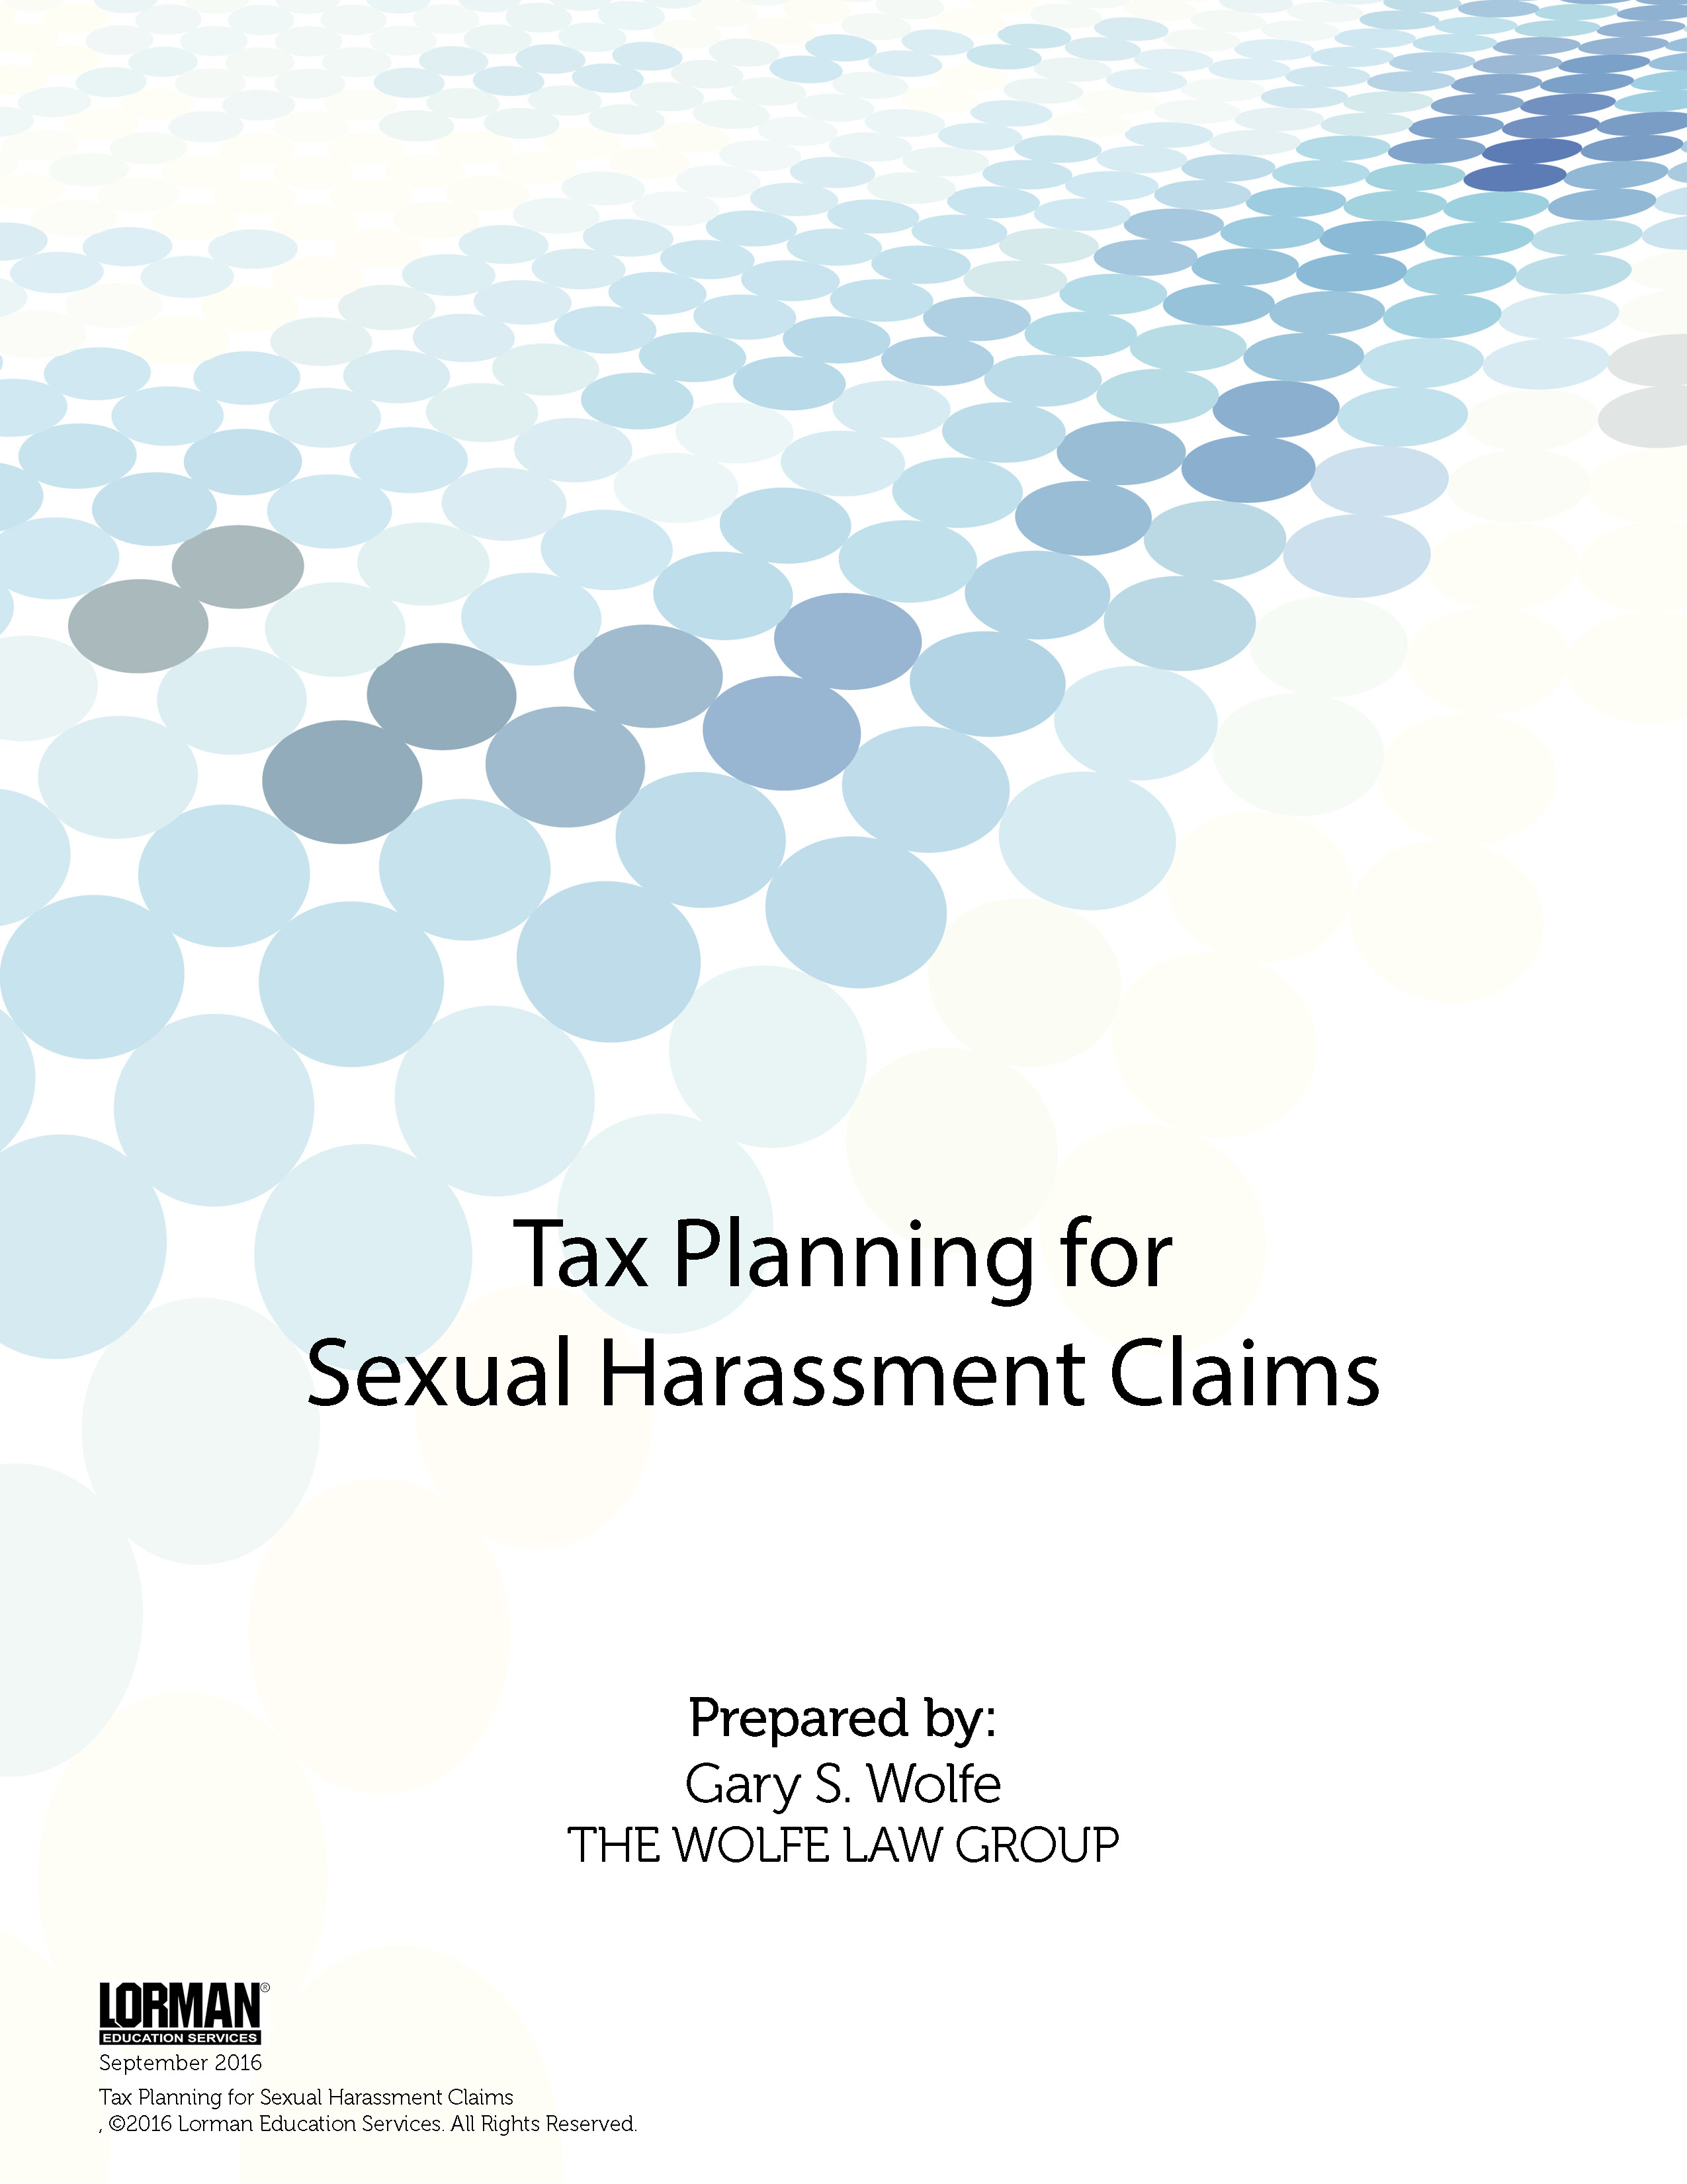 Tax Planning for Sexual Harassment Claims